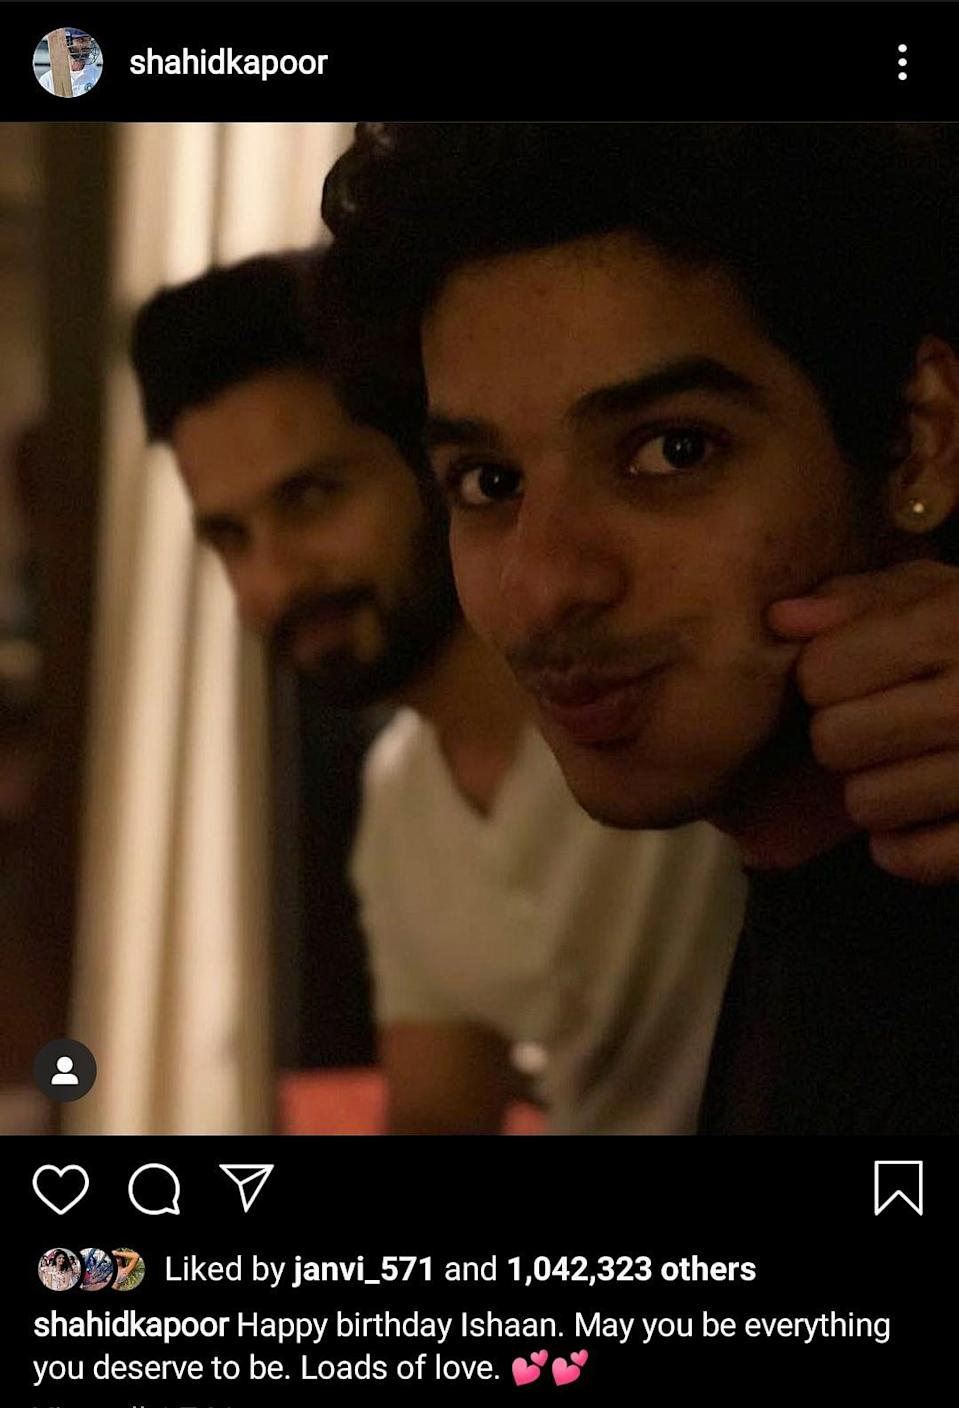 Shahid and Ishaan in an Instagram post for the latter's birthday